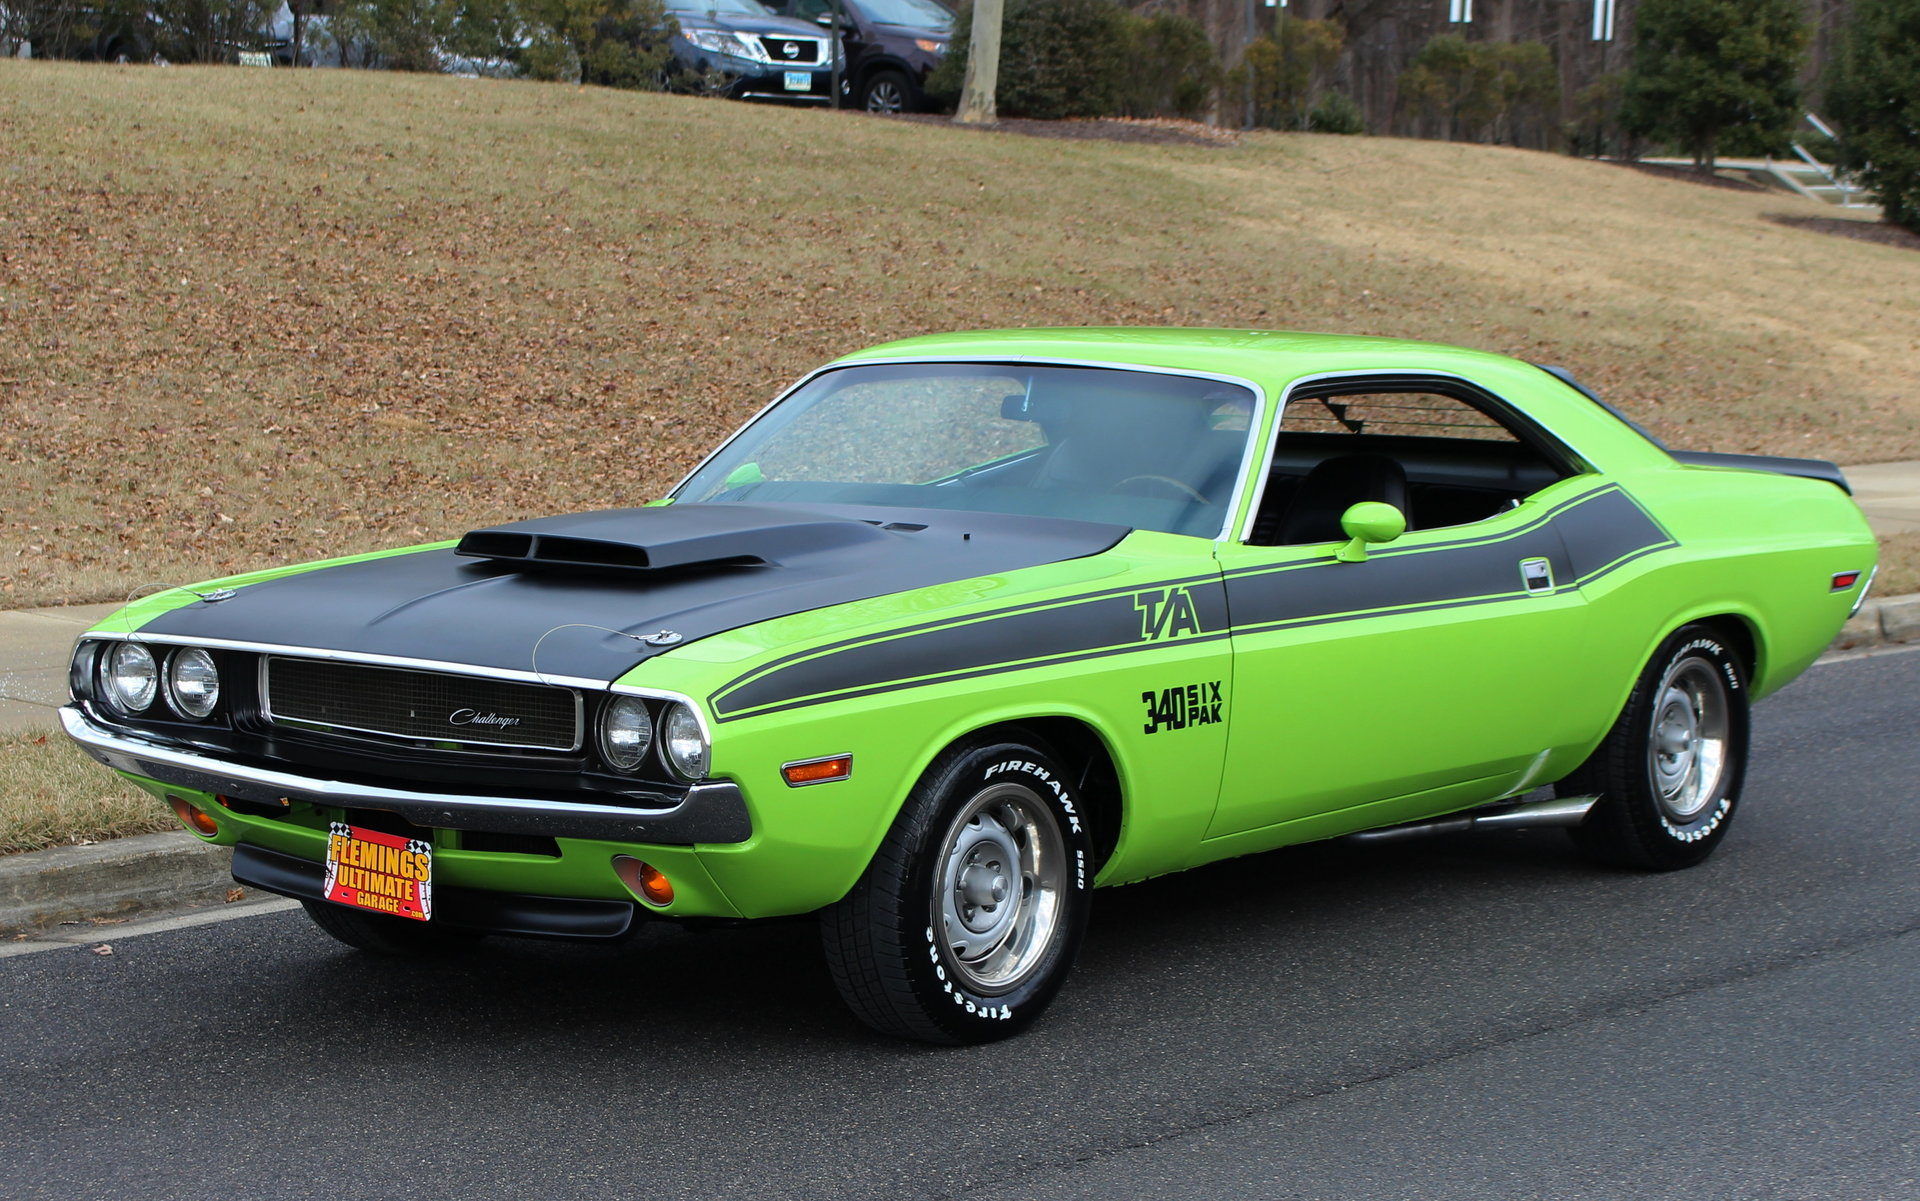 1970 dodge t a challenger 1970 dodge challenger 340 sixpack t a for sale to buy our purchase. Black Bedroom Furniture Sets. Home Design Ideas